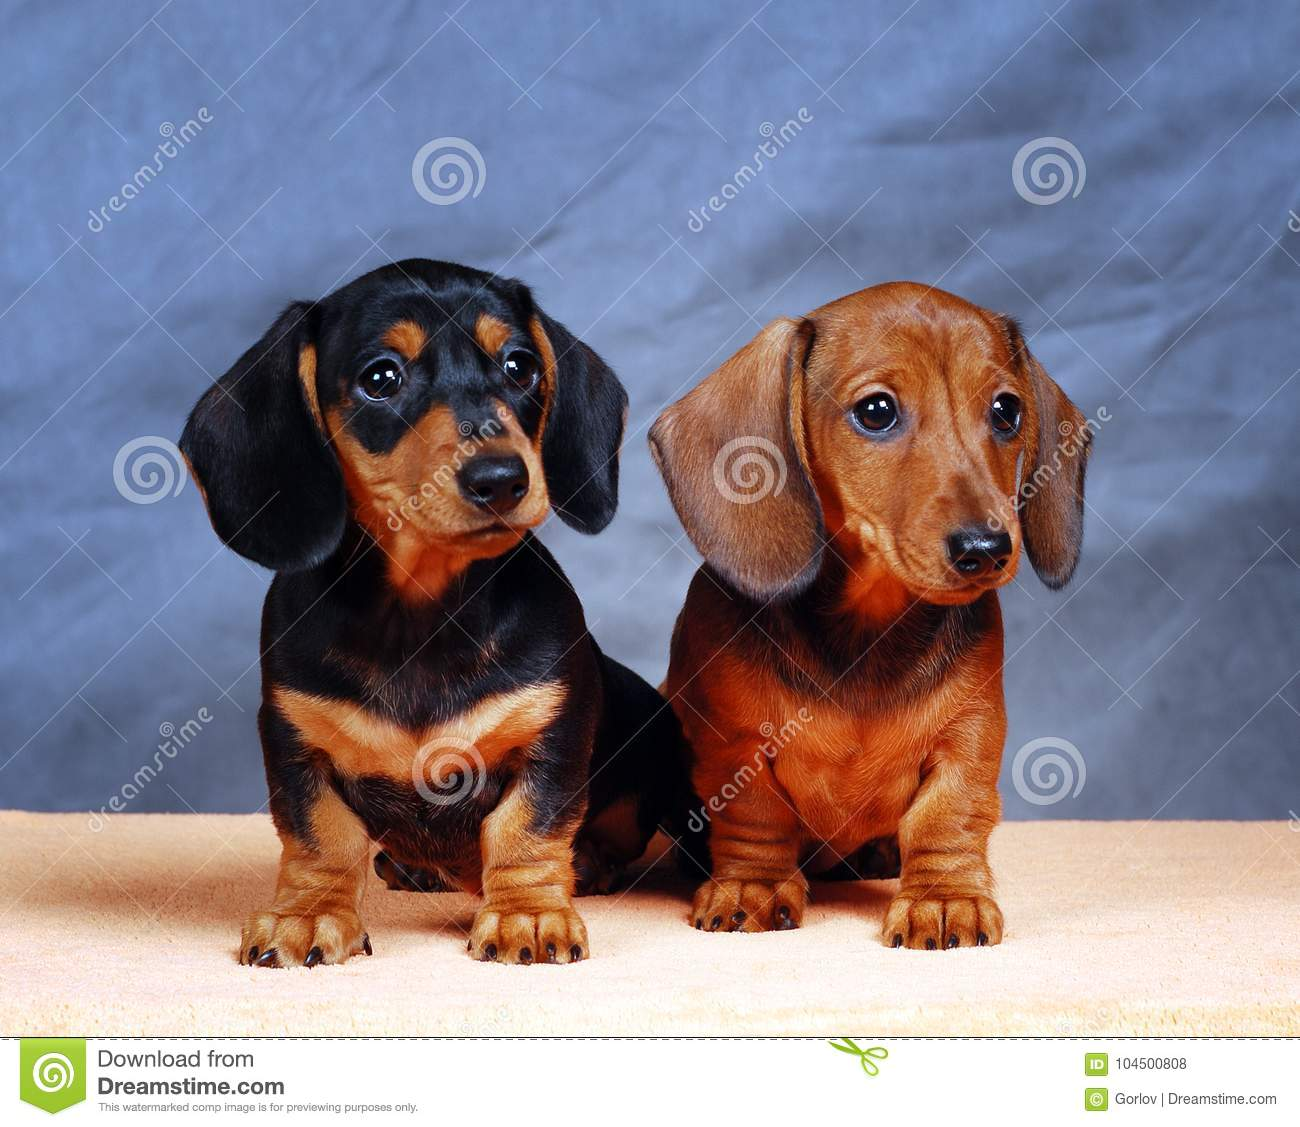 Two Pretty Dachshund Puppy On Blue Background Stock Photo Image Of Dachshund Racer 104500808